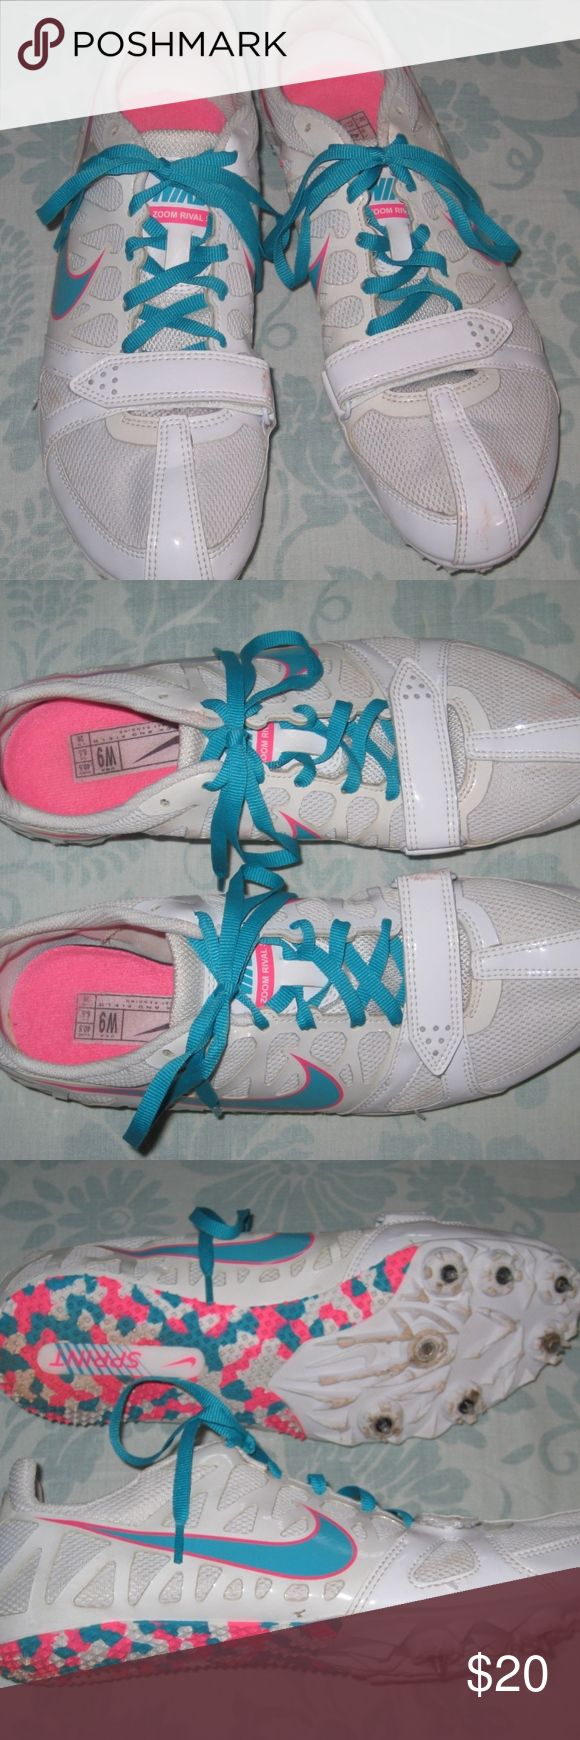 Nike Sprint Track & Field Zoom Rival S Cleats Shoe Gently Used. -P- Nike Shoes Sneakers